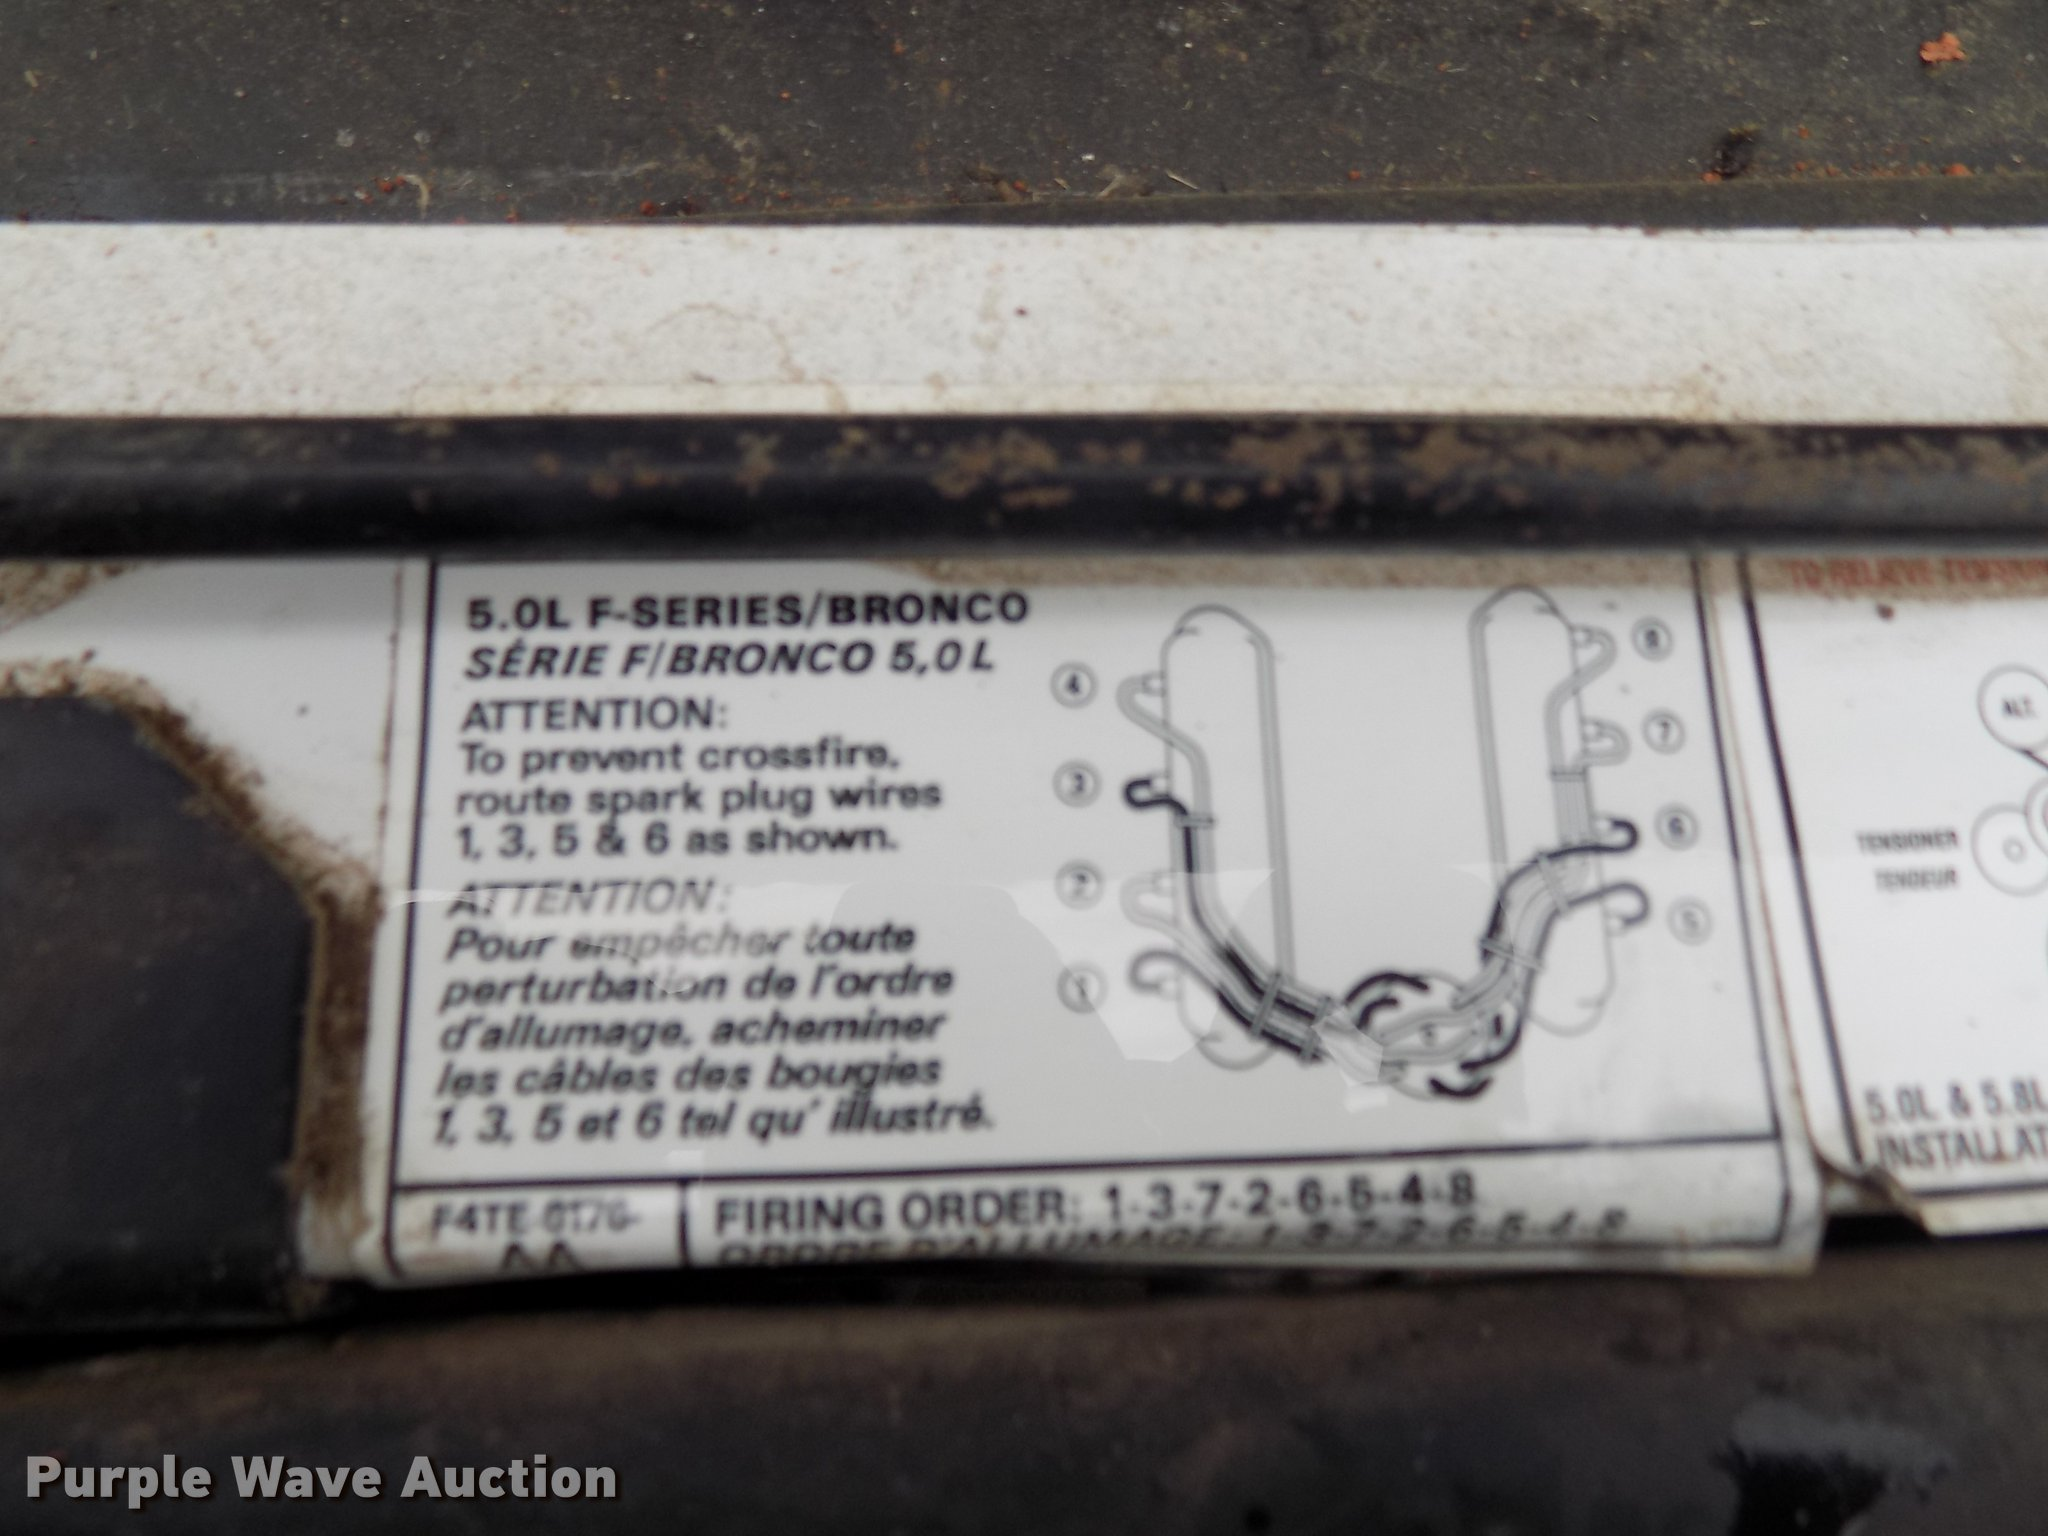 1994 Ford F150 Supercab Pickup Truck Item Dd3492 Sold N Zx 11 Spark Plug Wire Diagram Full Size In New Window